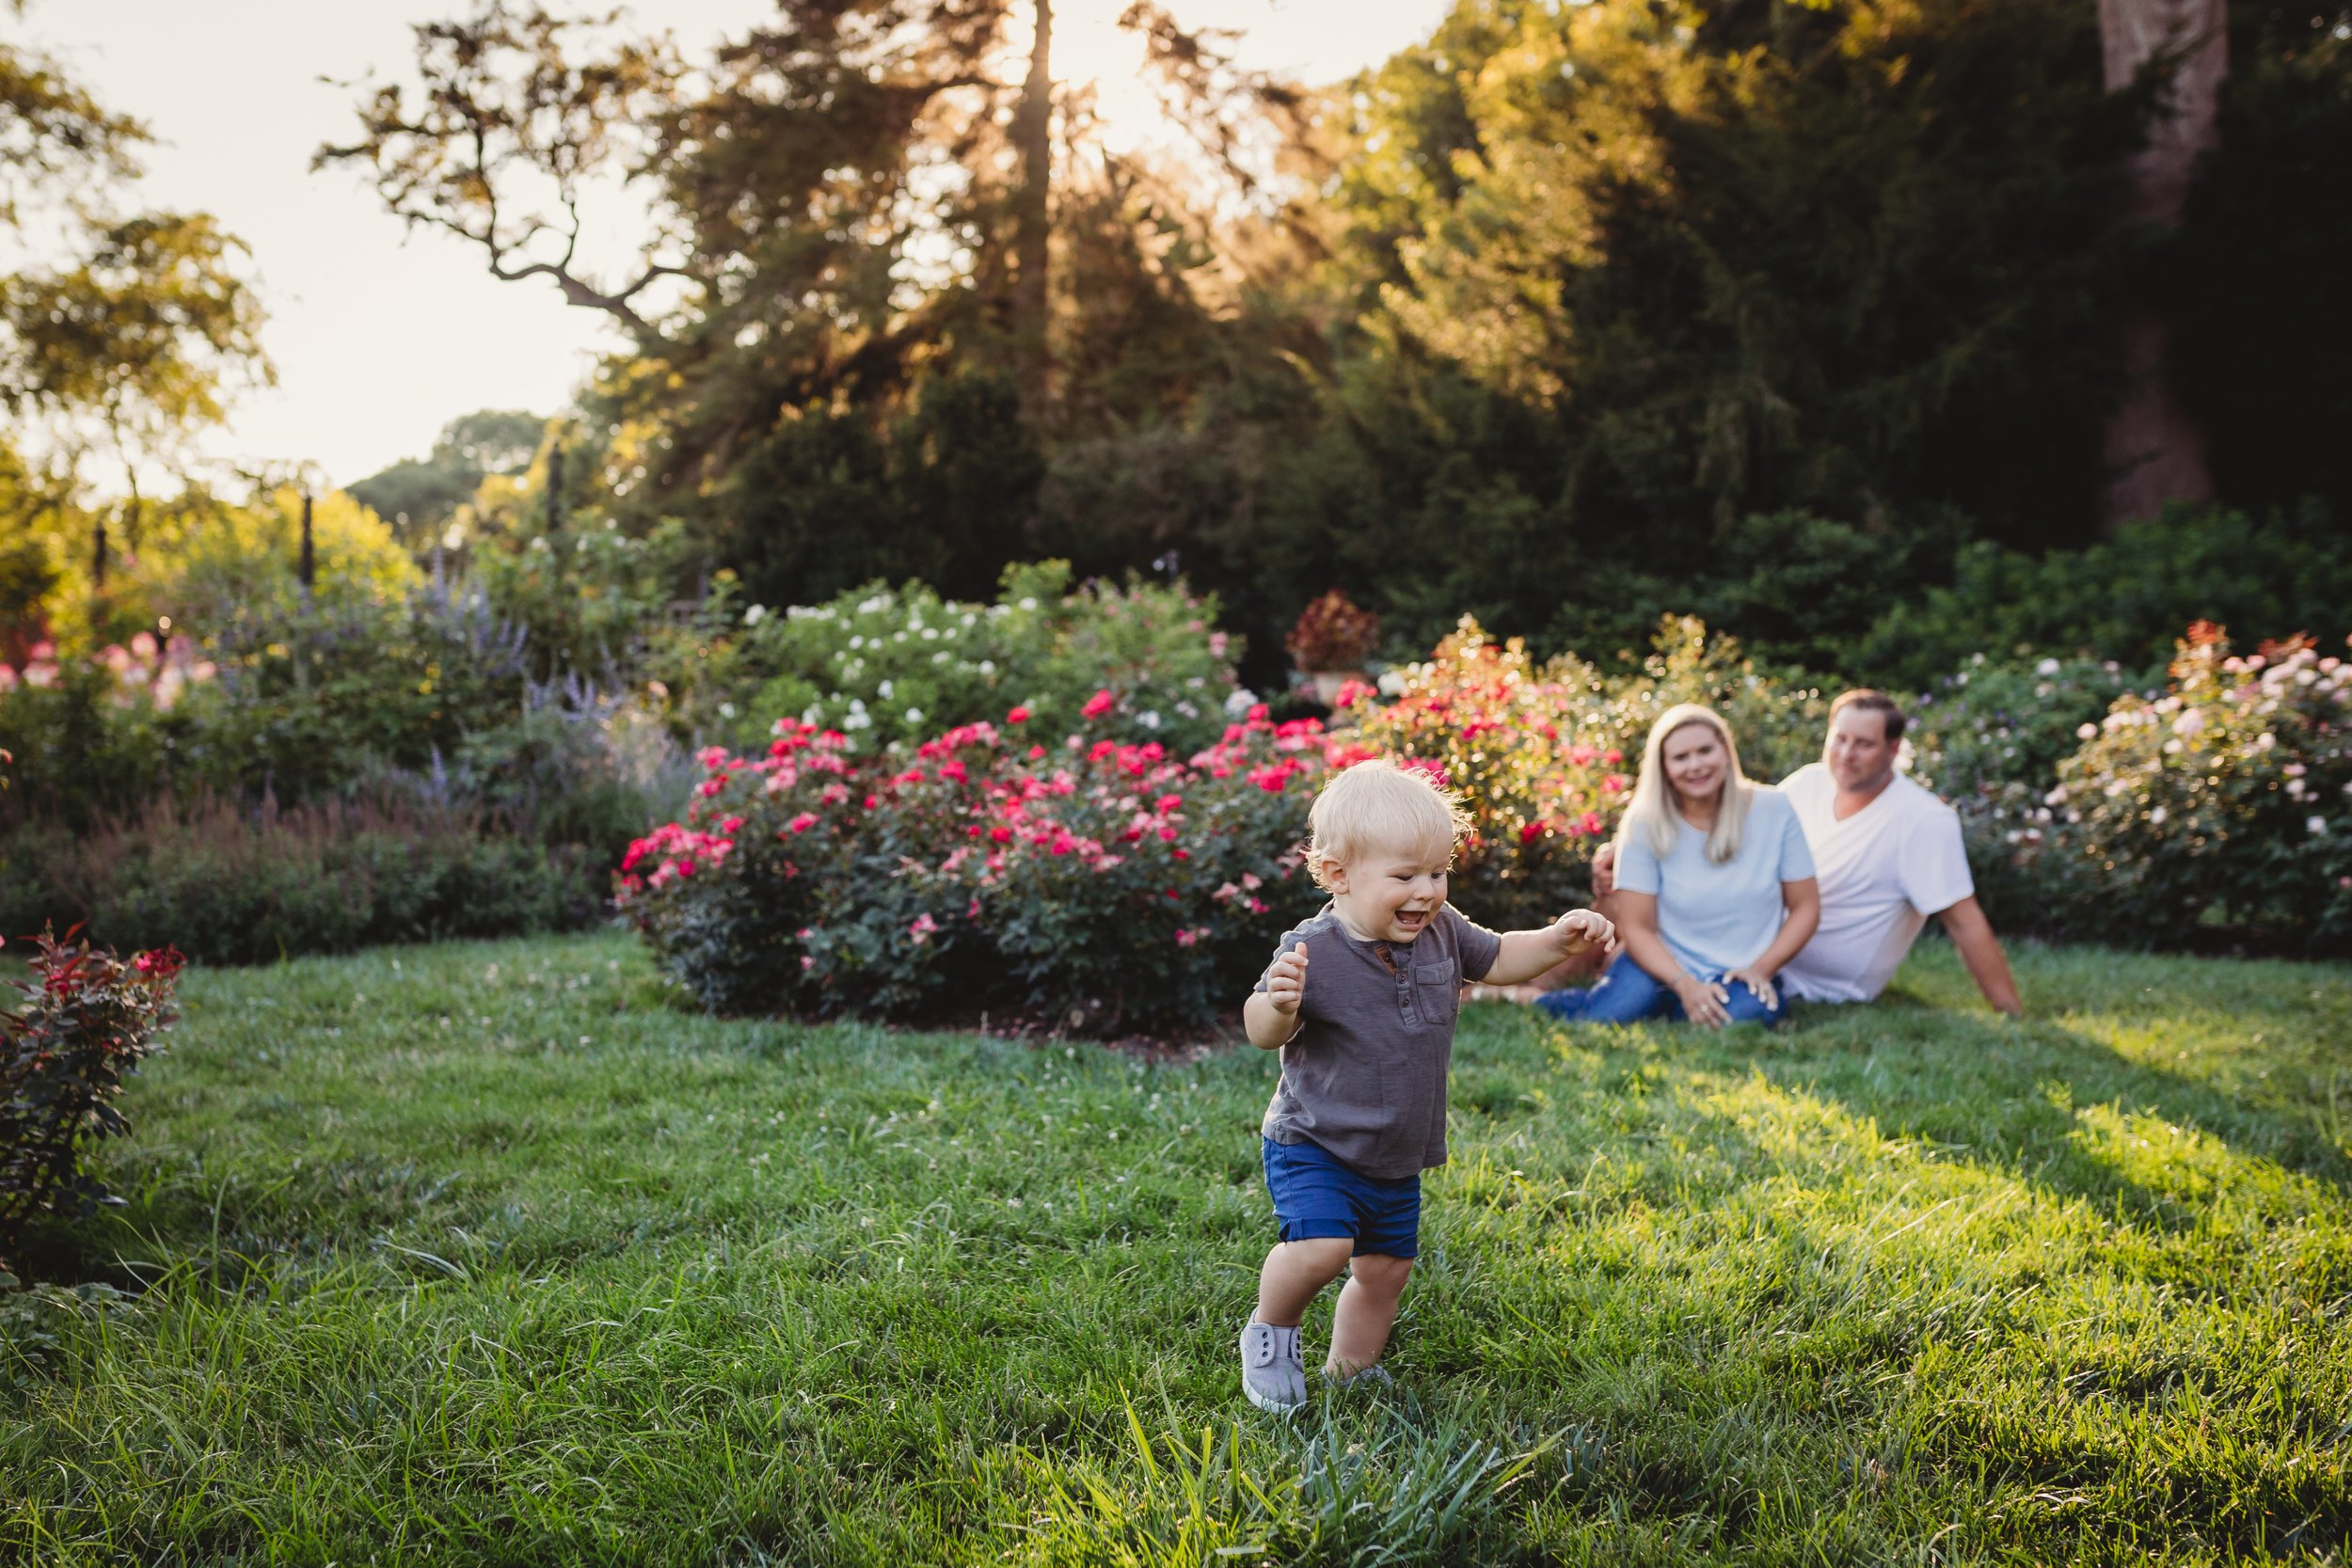 Chestnut Hill Family Photography Session at Morris Arboretum with Desiree Hoelzle Photography